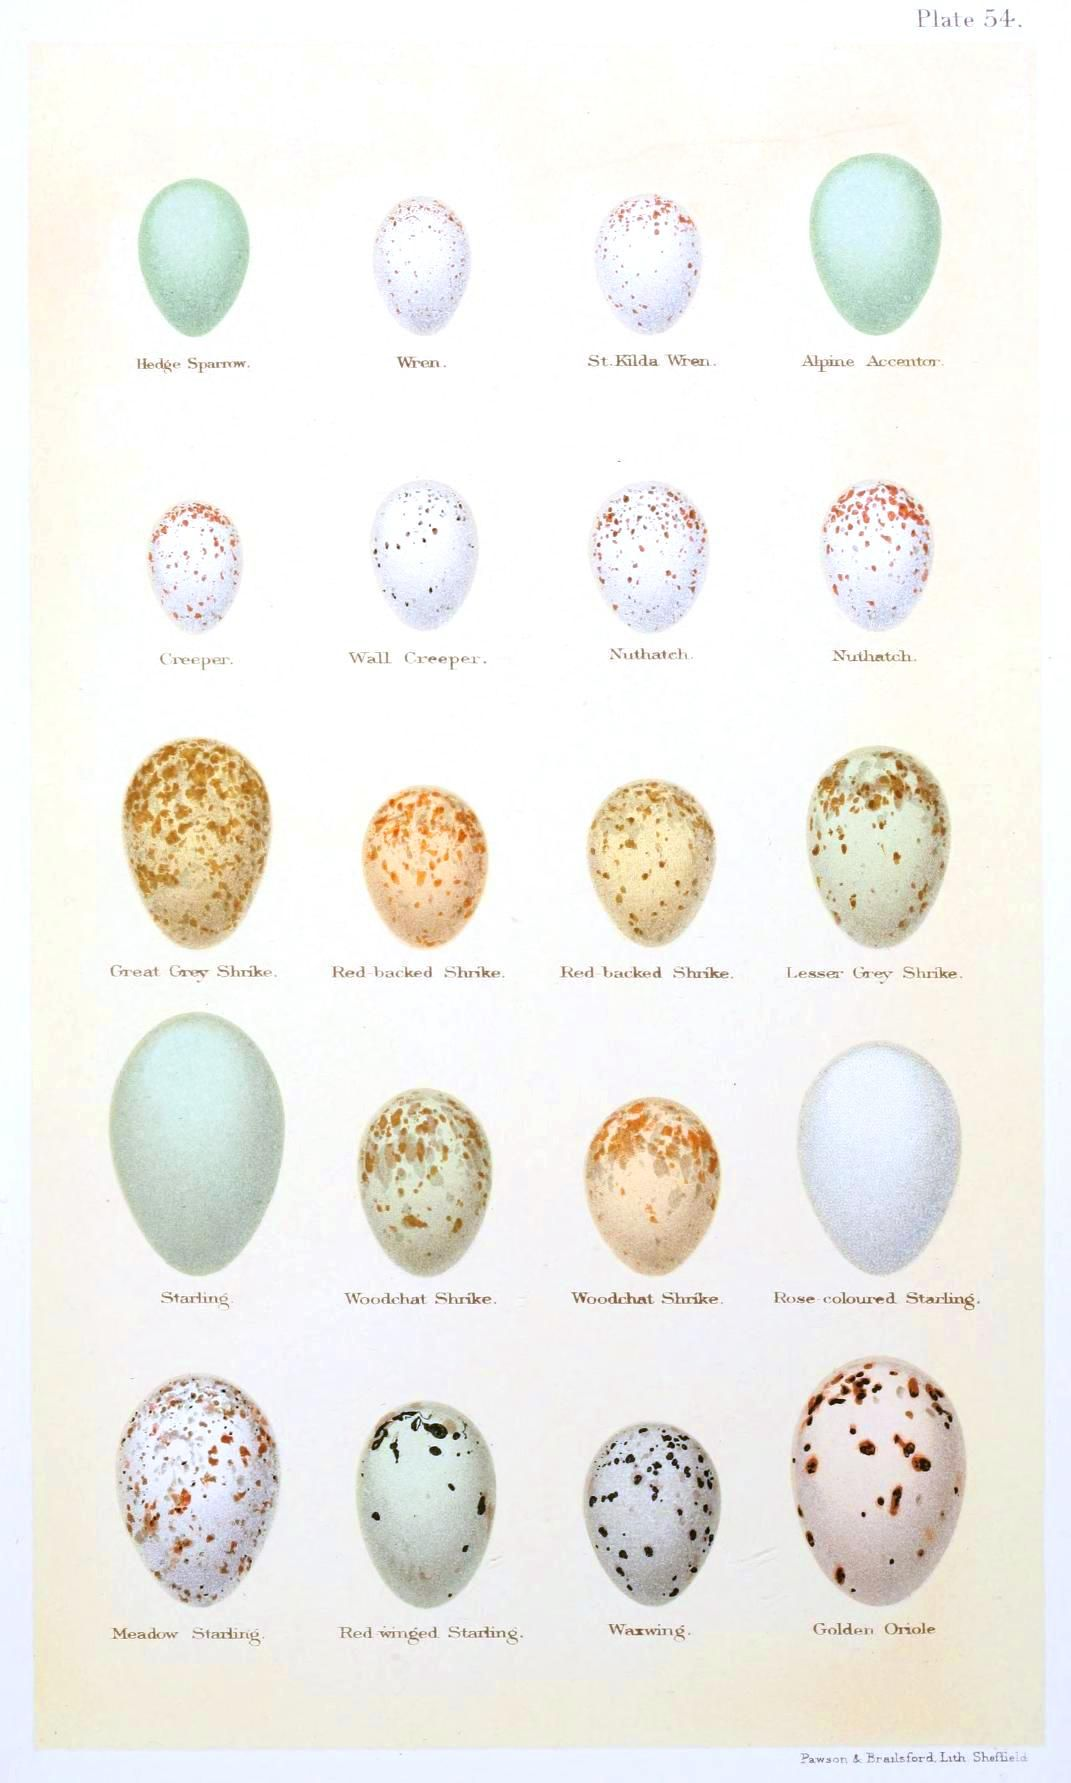 Worksheet Animals And Their Eggs